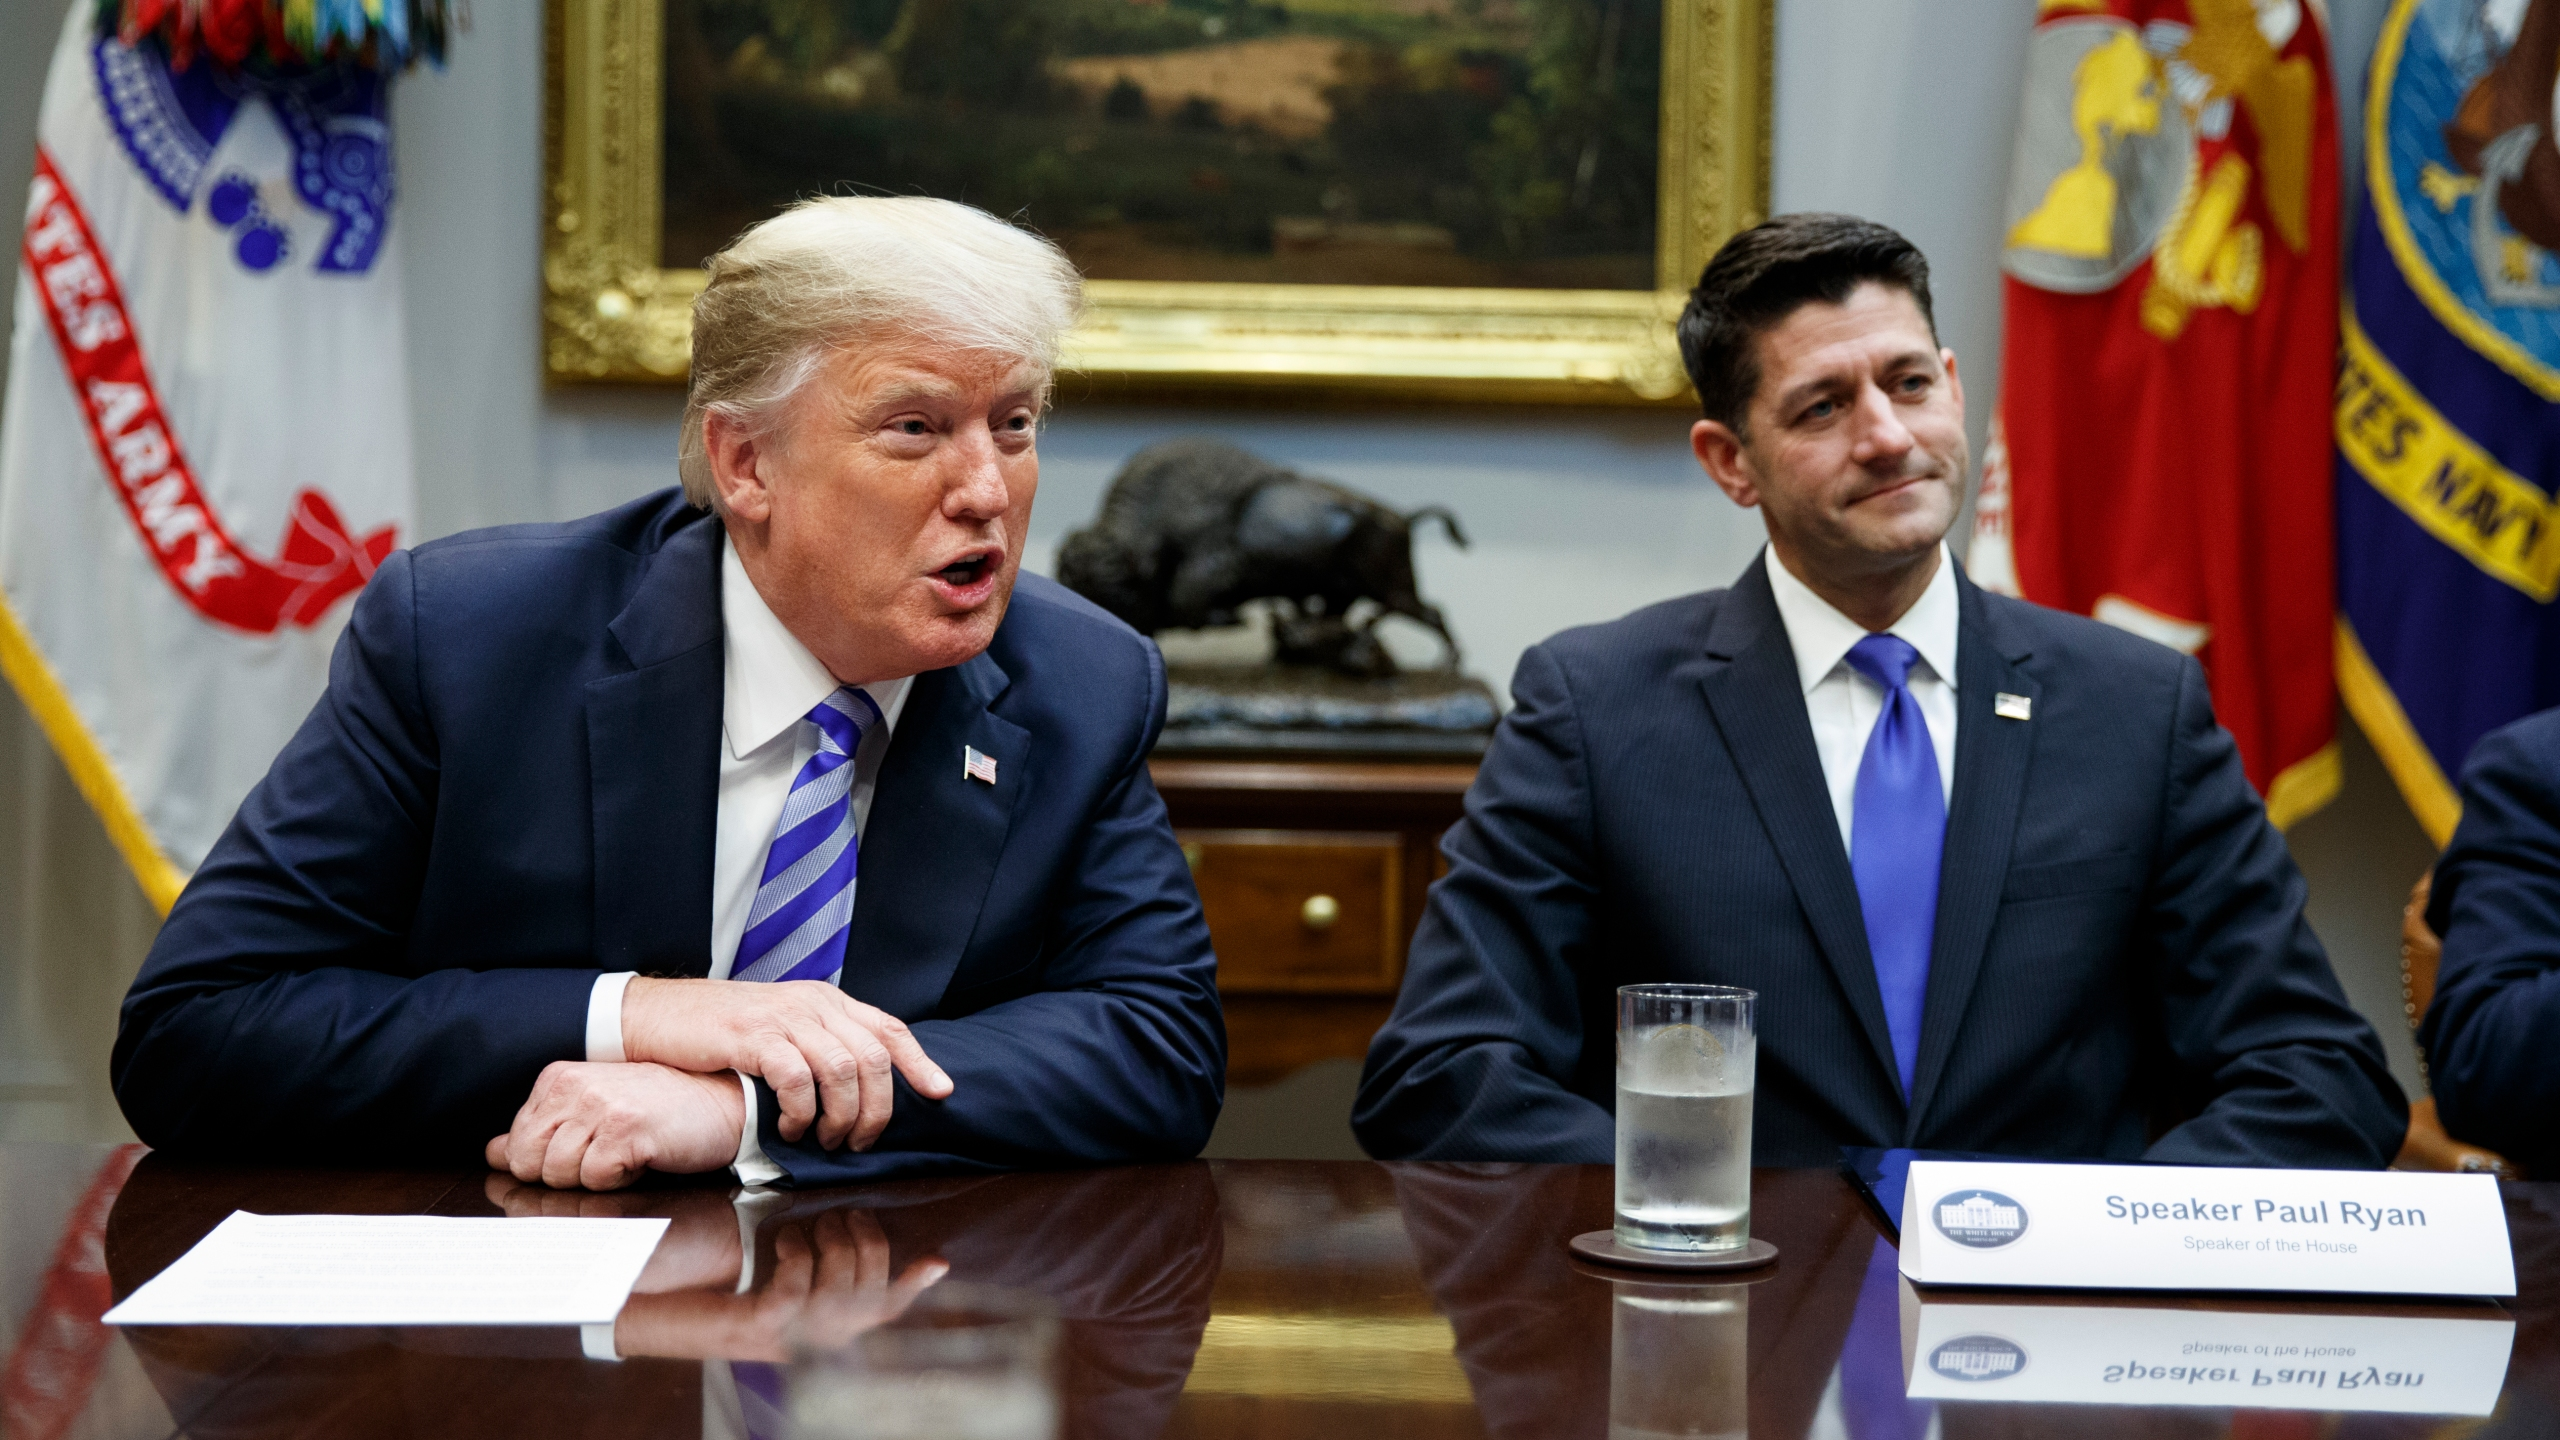 In this Sept. 5, 2018, file photo, then-Speaker of the House Paul Ryan, R-Wis., listens to President Donald Trump speak during a meeting with Republican lawmakers in the Roosevelt Room of the White House in Washington. (AP Photo/Evan Vucci, File)